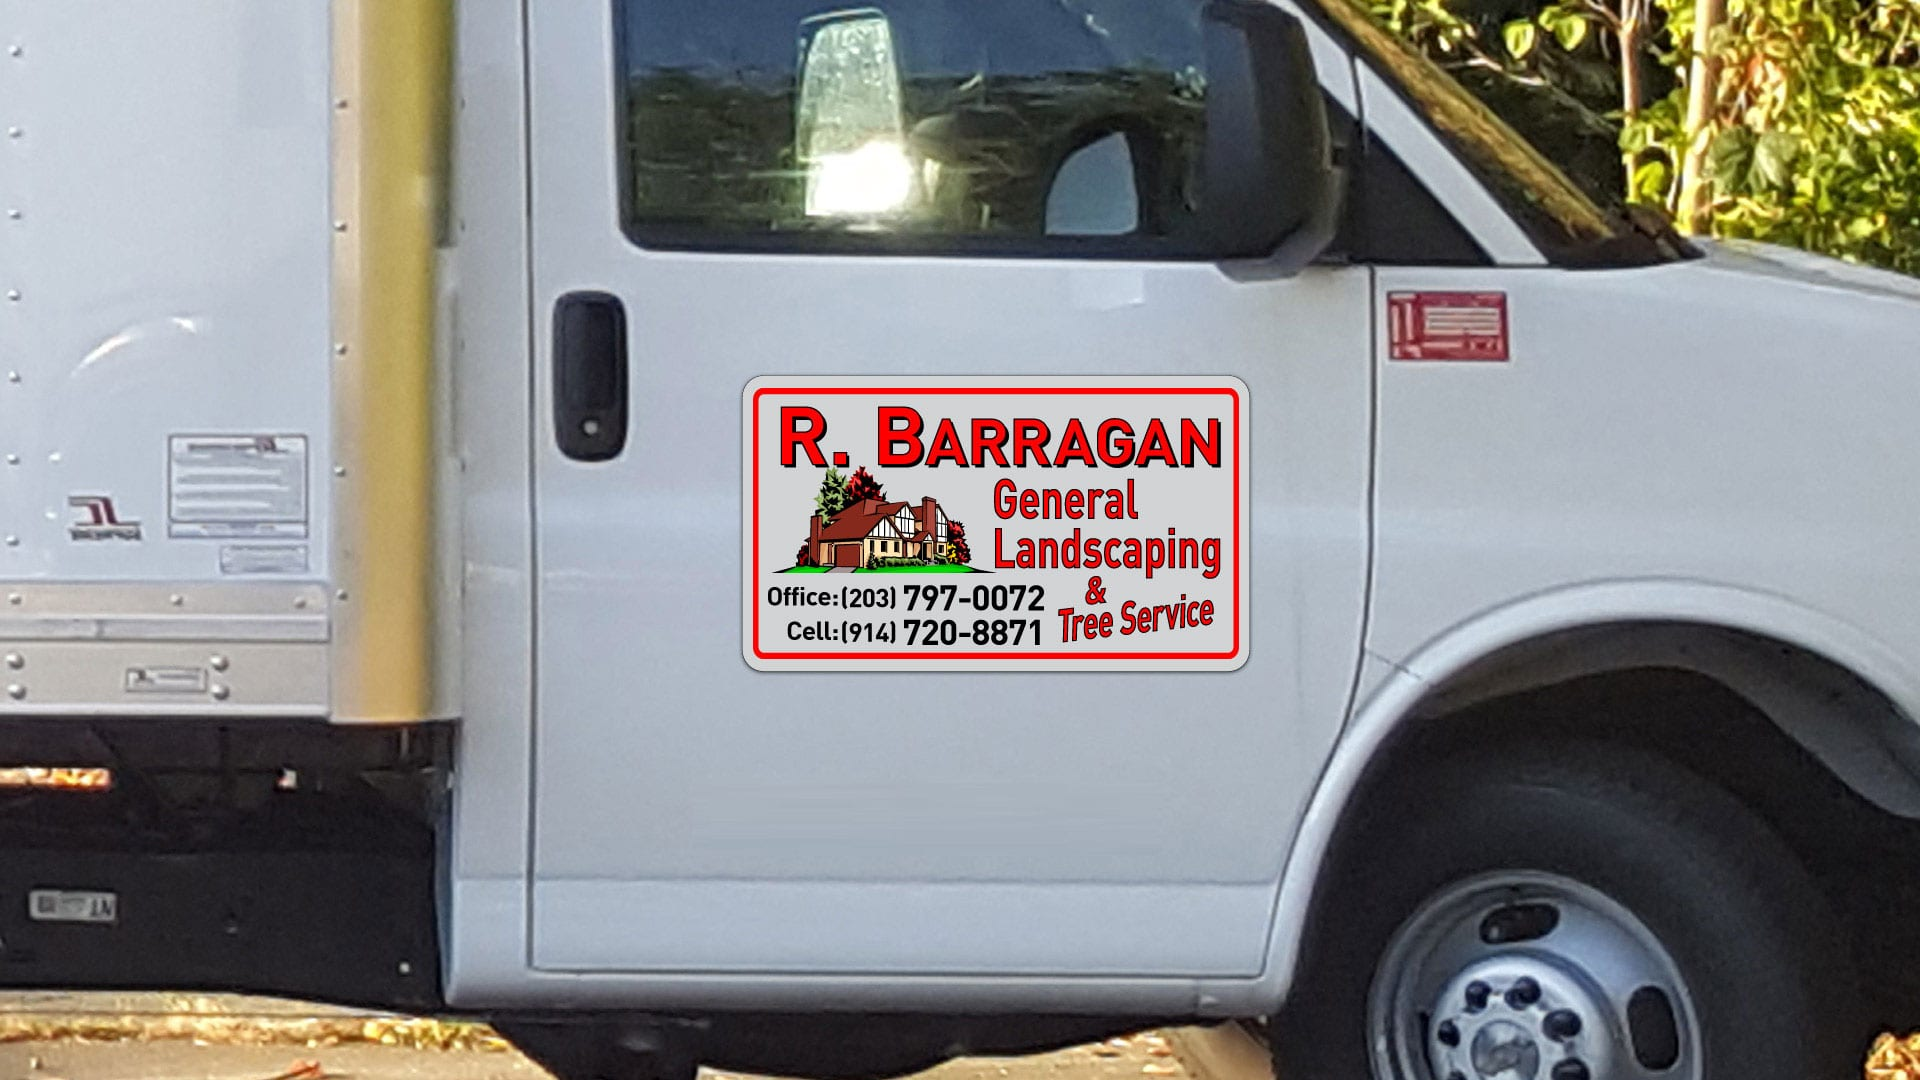 Custom car magnet for R. Barragan